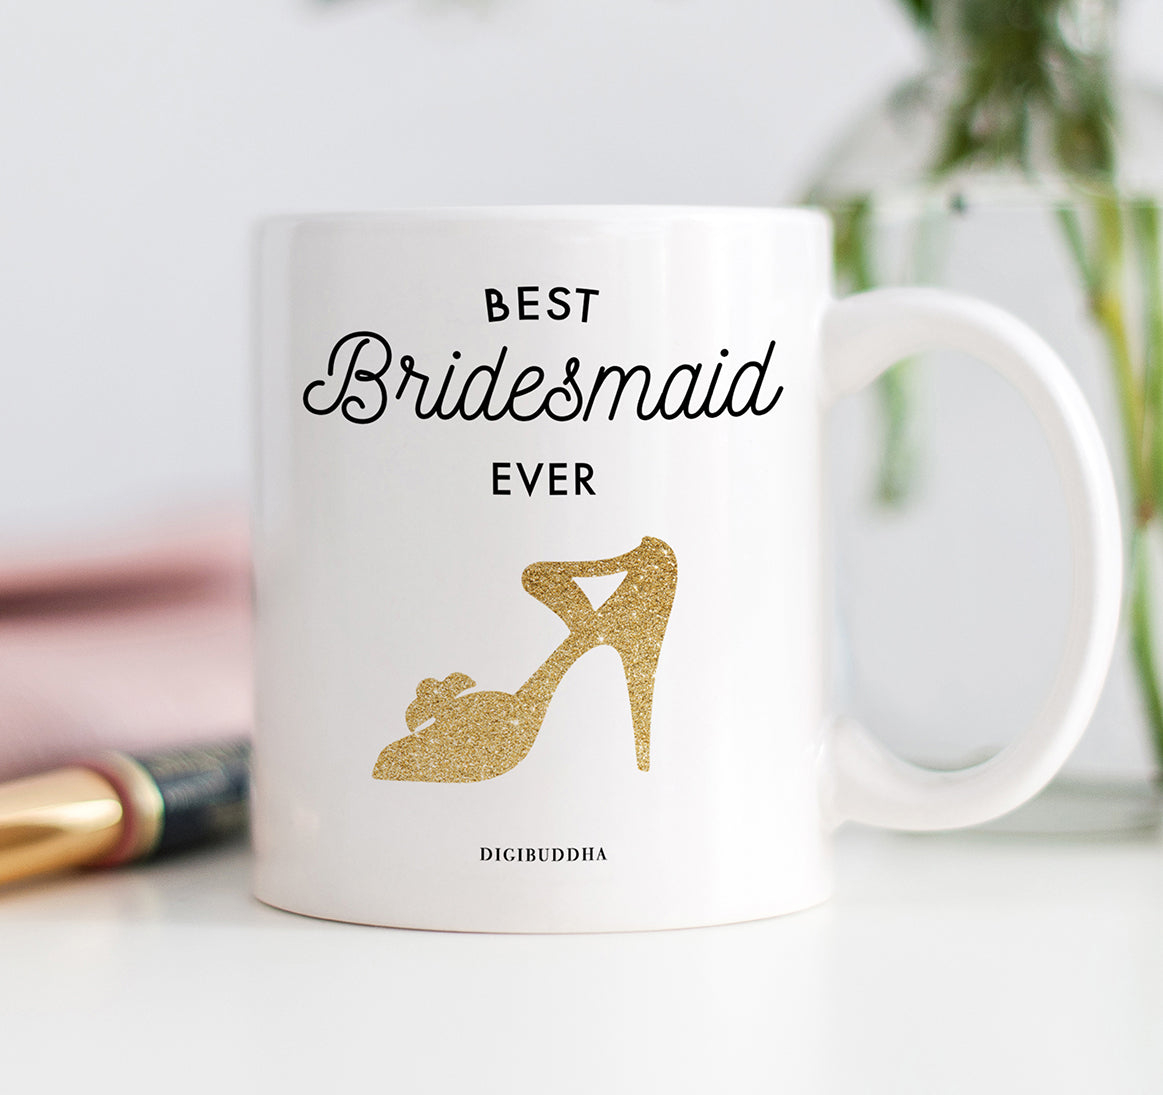 Best Bridesmaid Ever Mug